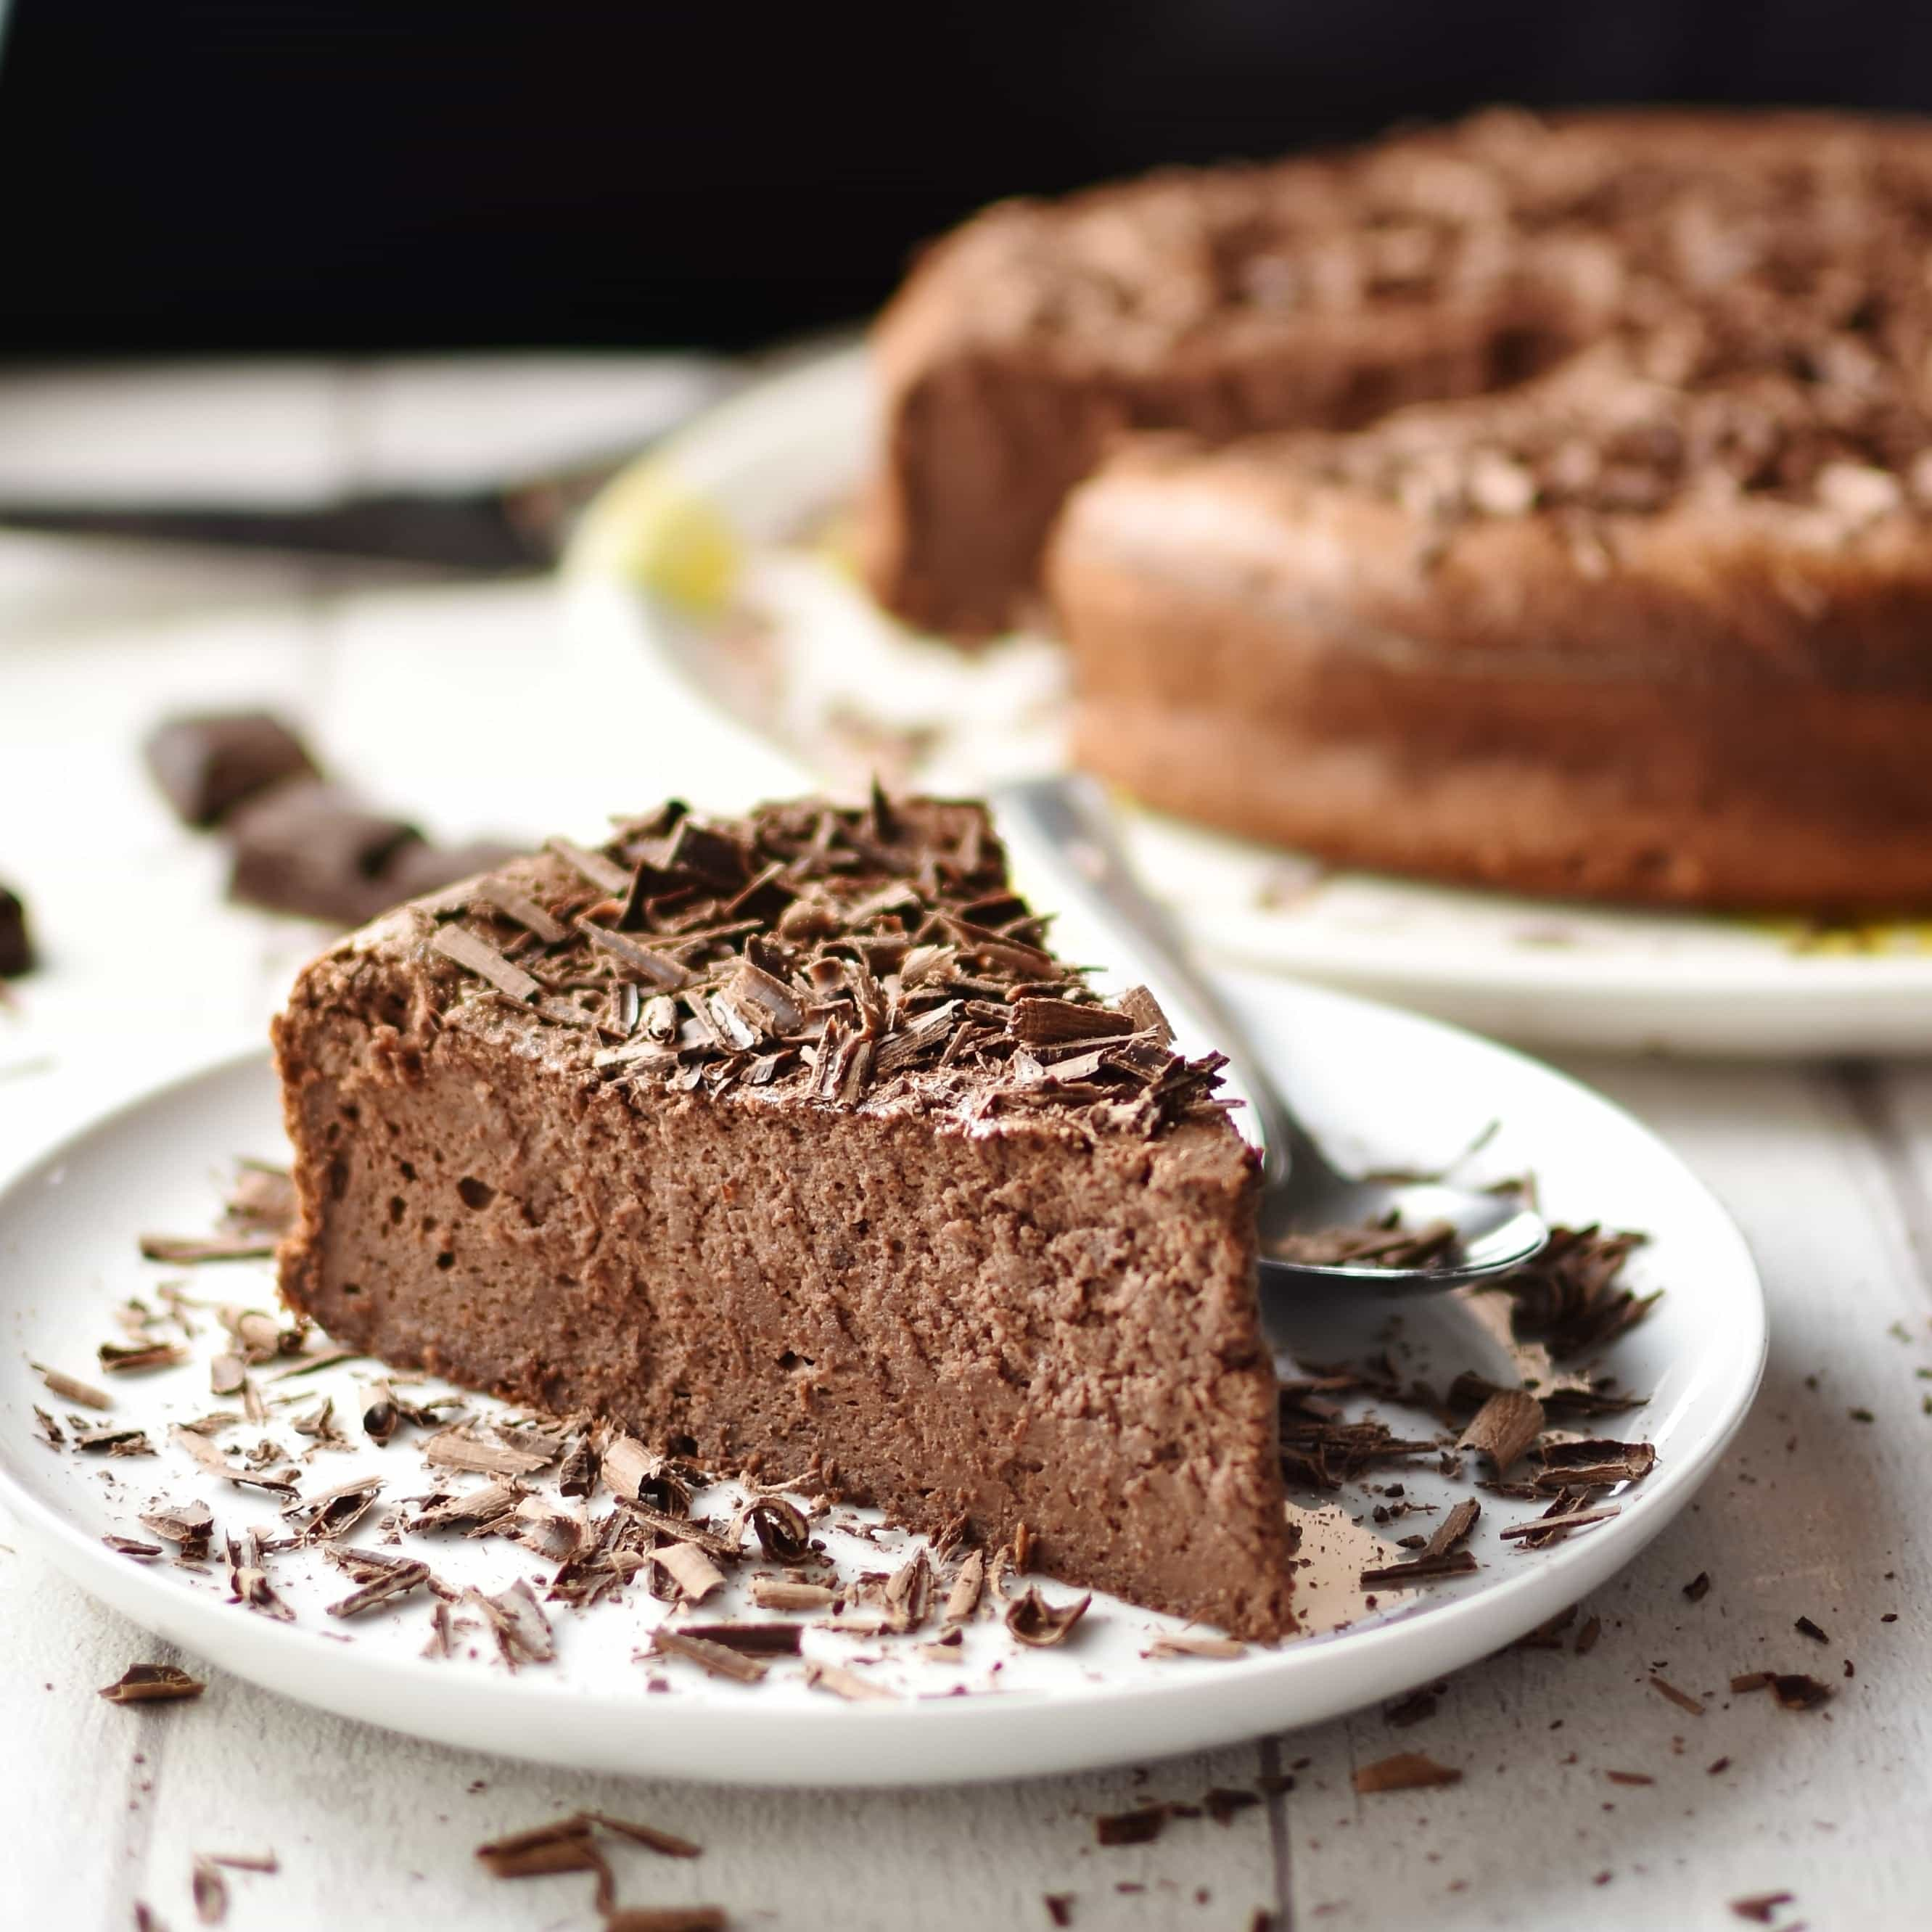 Chocolate Ricotta Cheesecake (Healthy, Baked)